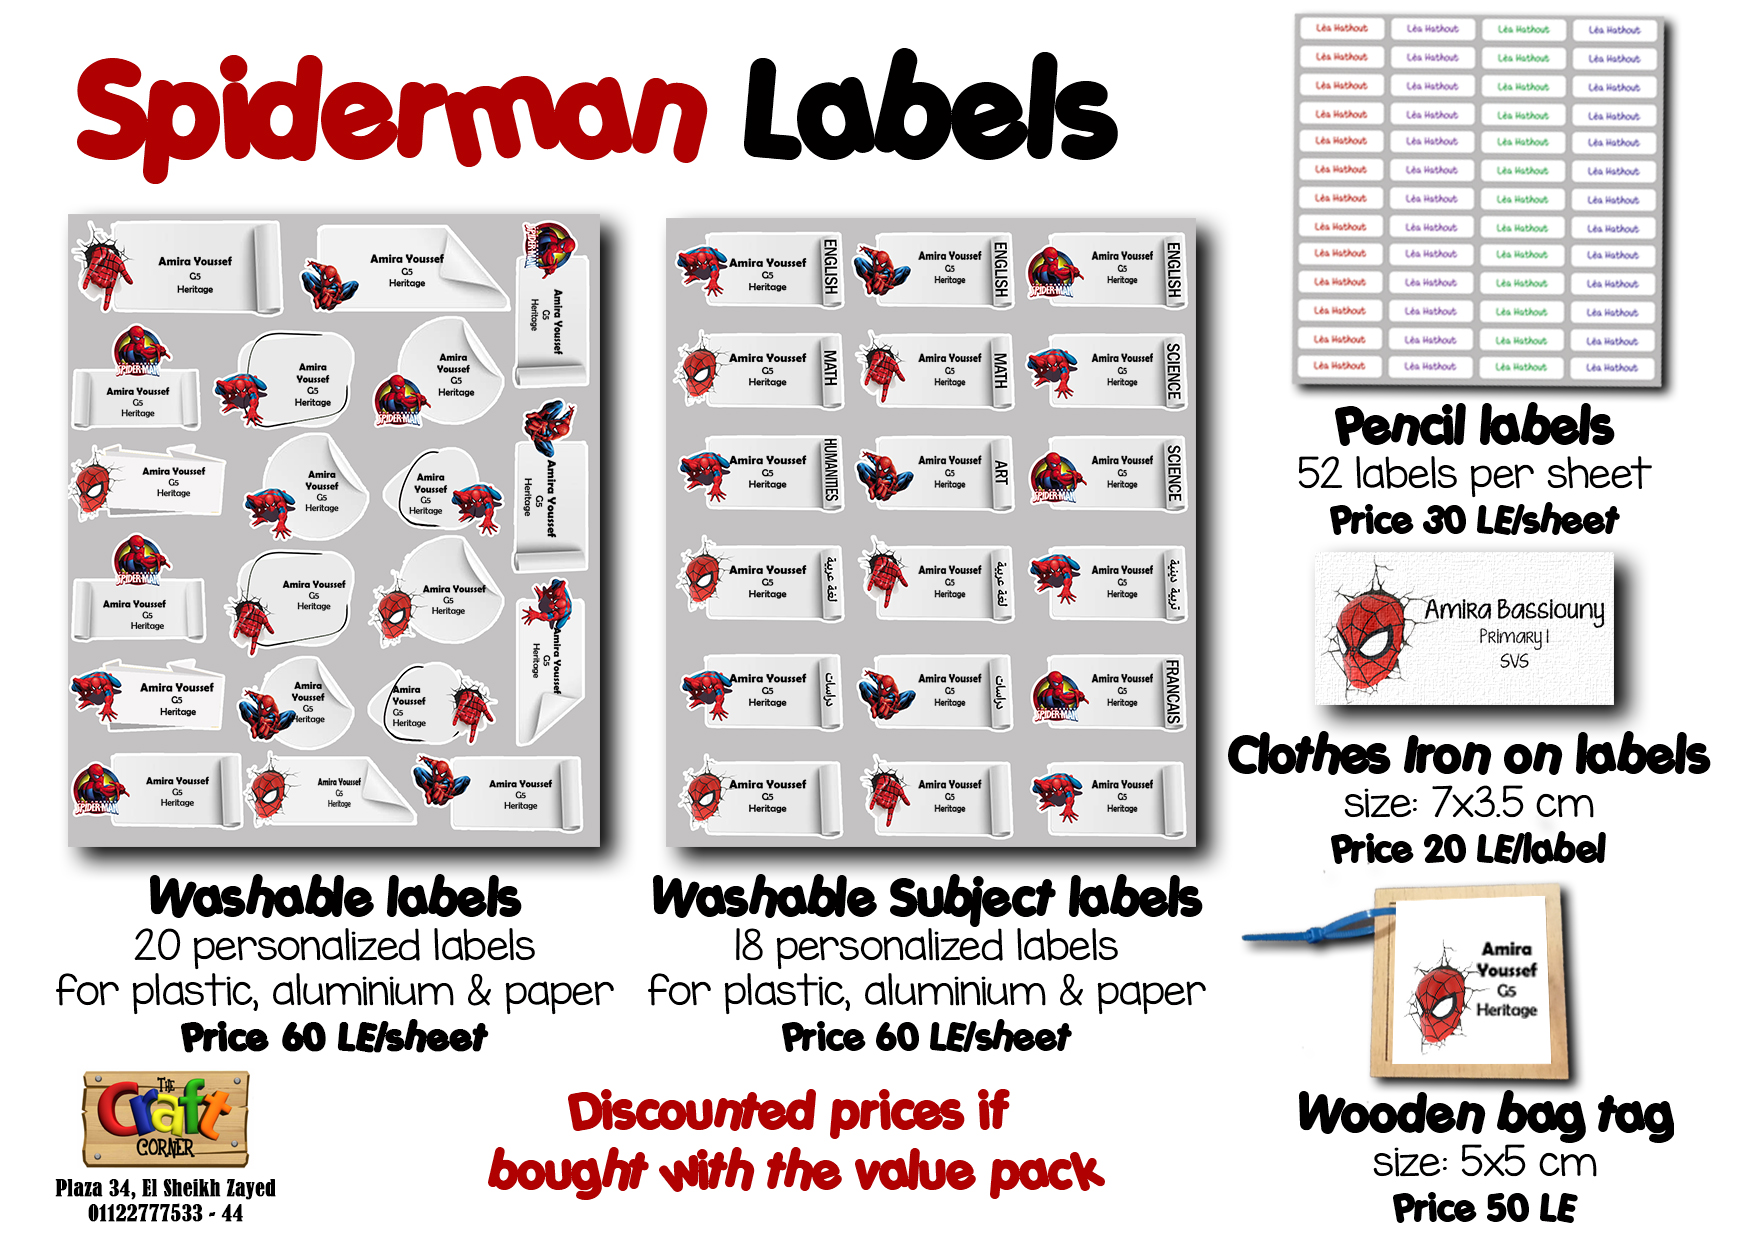 spiderman Labels